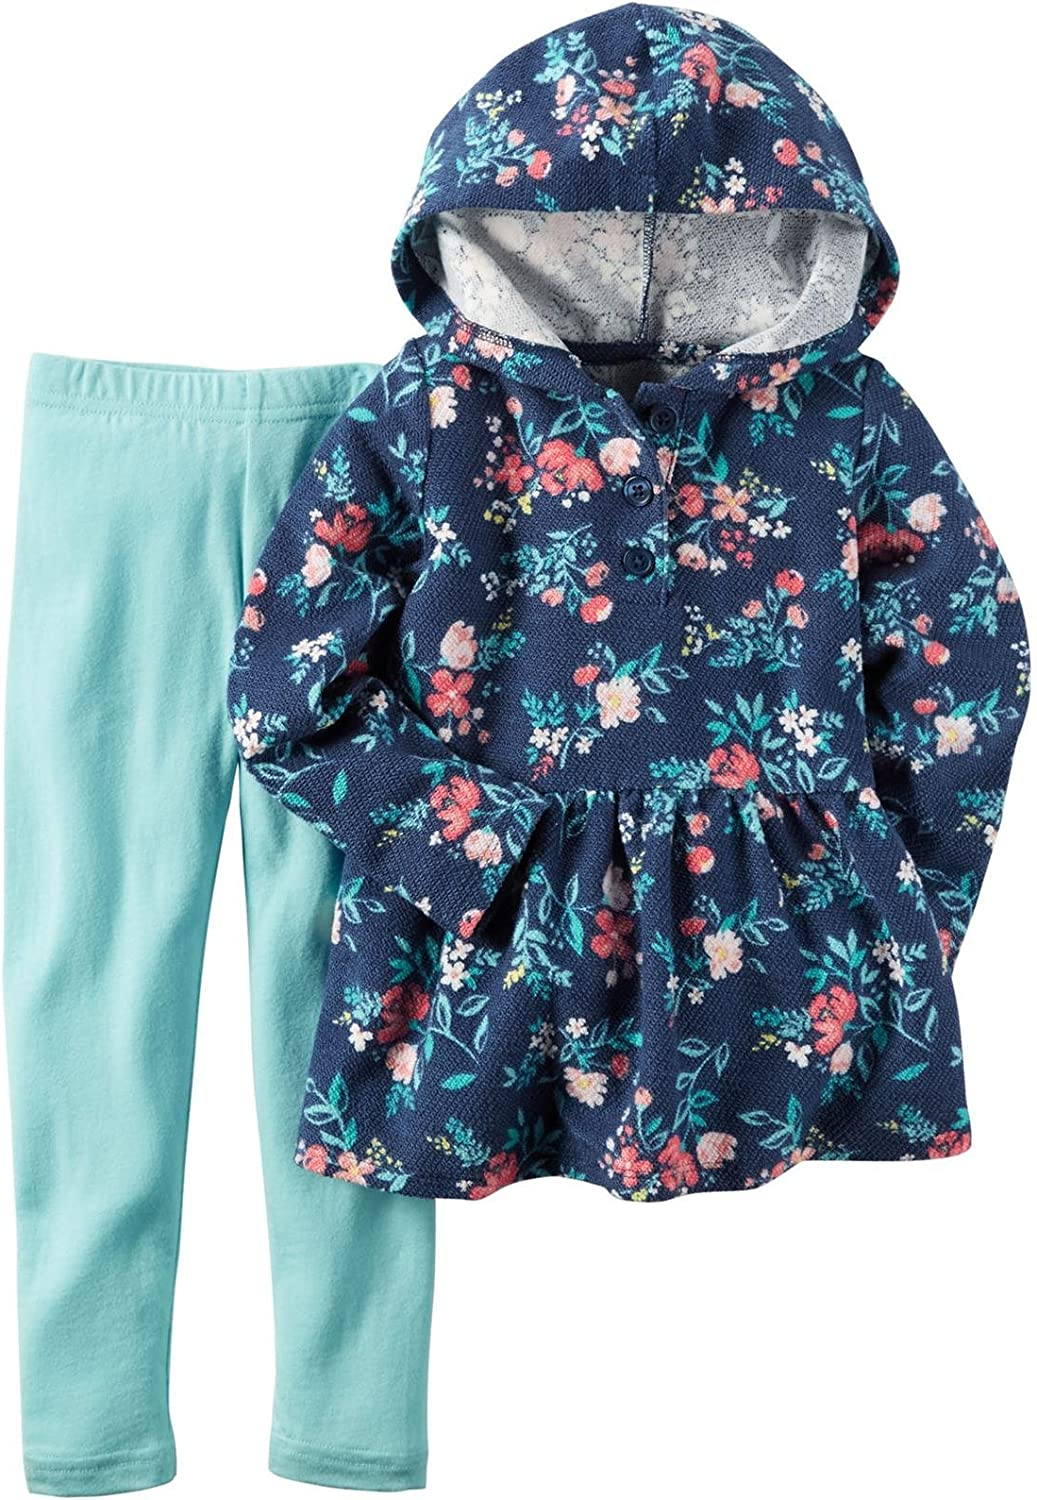 Carters Baby Girls 2 Pc Playwear Sets 239g228